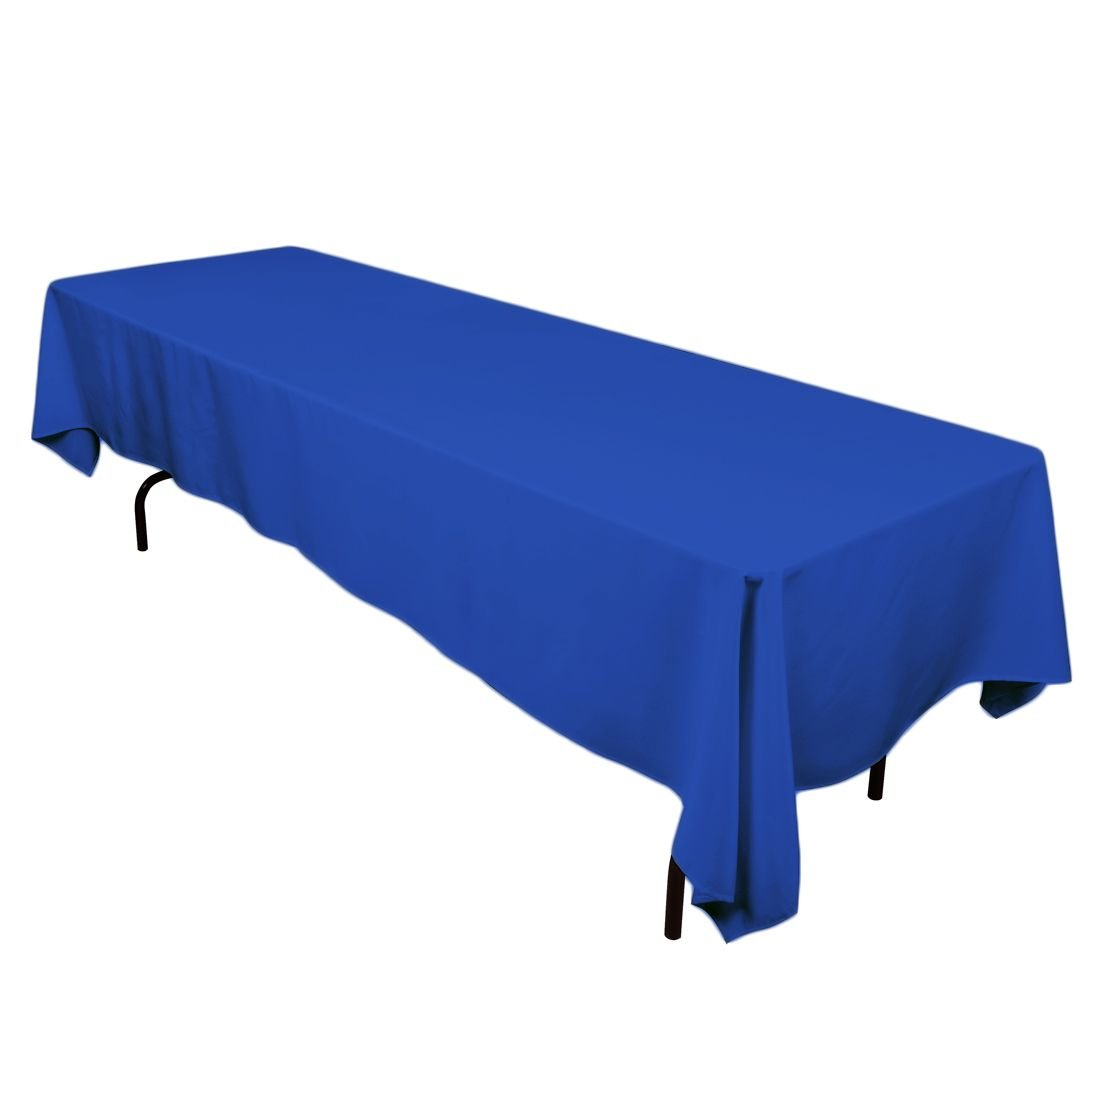 Gee Di Moda Rectangle Tablecloth - 70 x 120 Inch - Royal Blue Rectangular Table Cloth in Washable Polyester - Great for Buffet Table, Parties, Holiday Dinner, Wedding & More